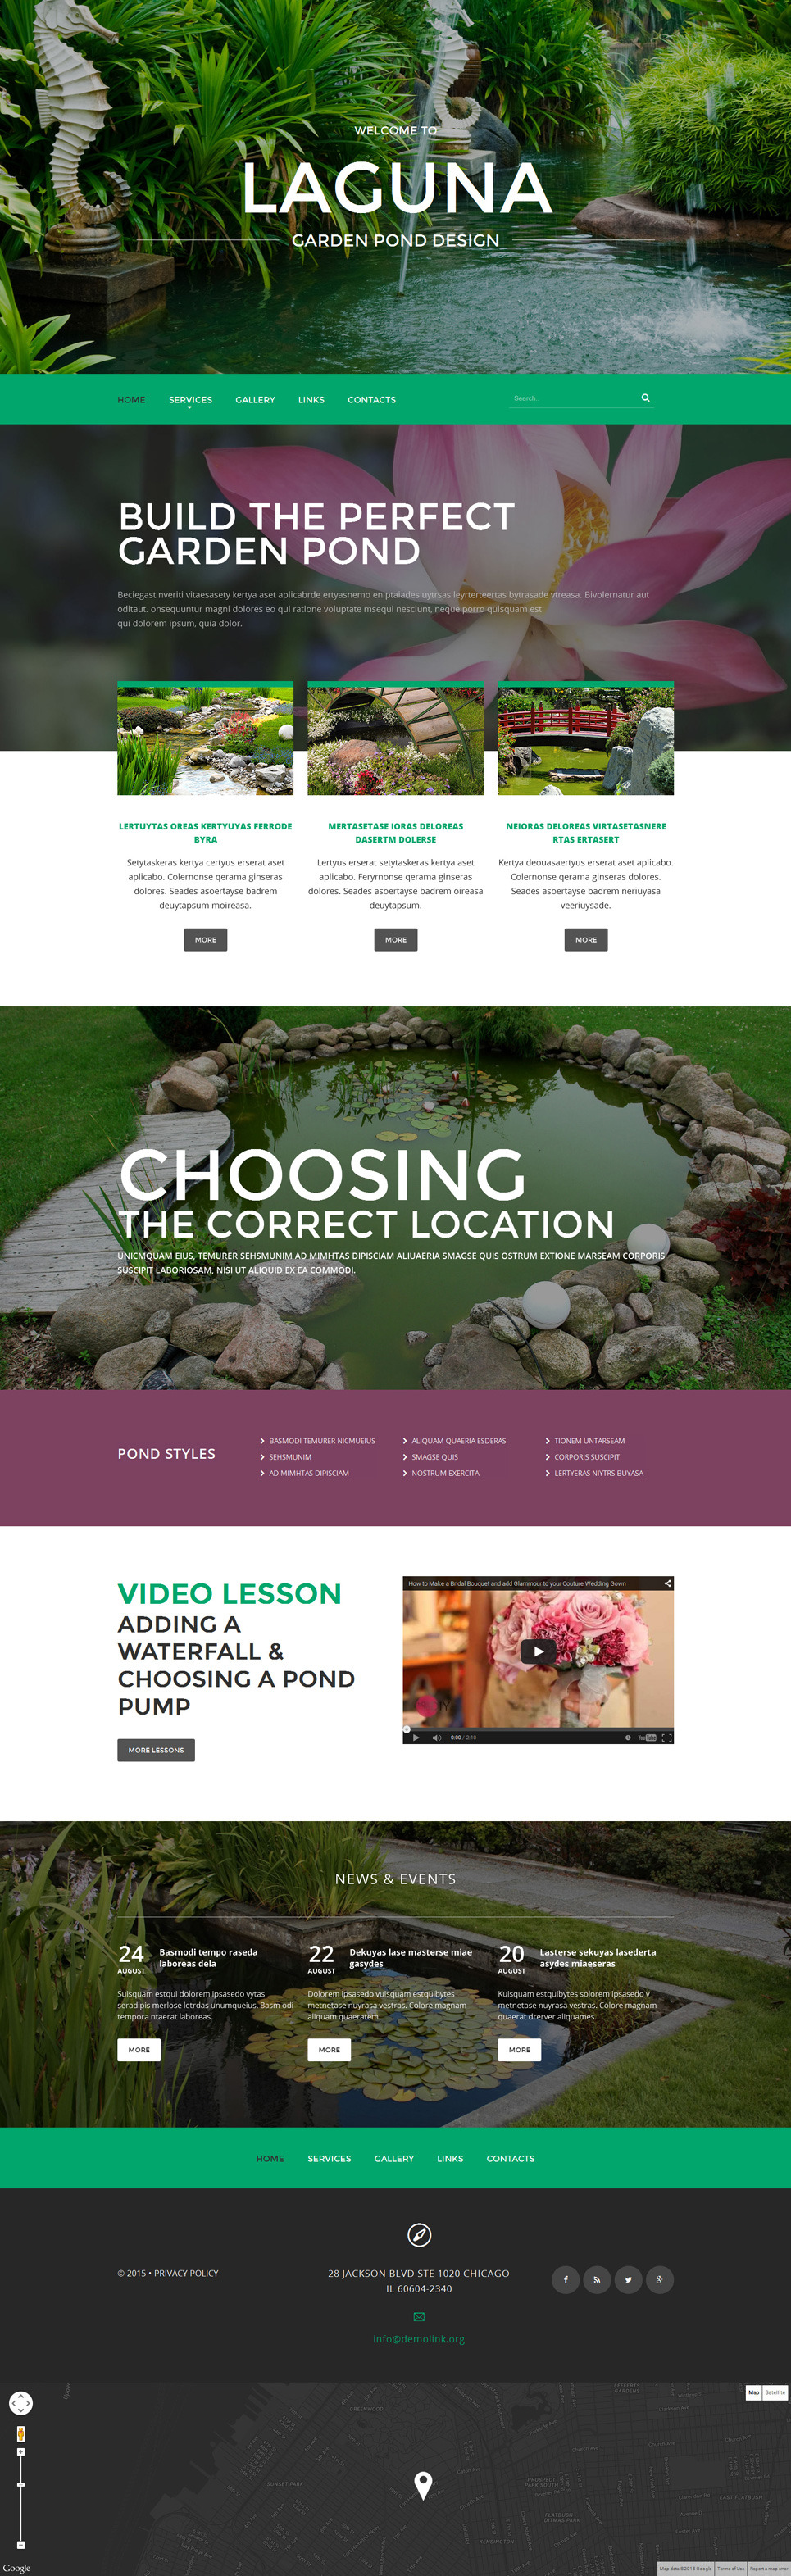 Merveilleux Garden Pond Design Website Template New Screenshots BIG